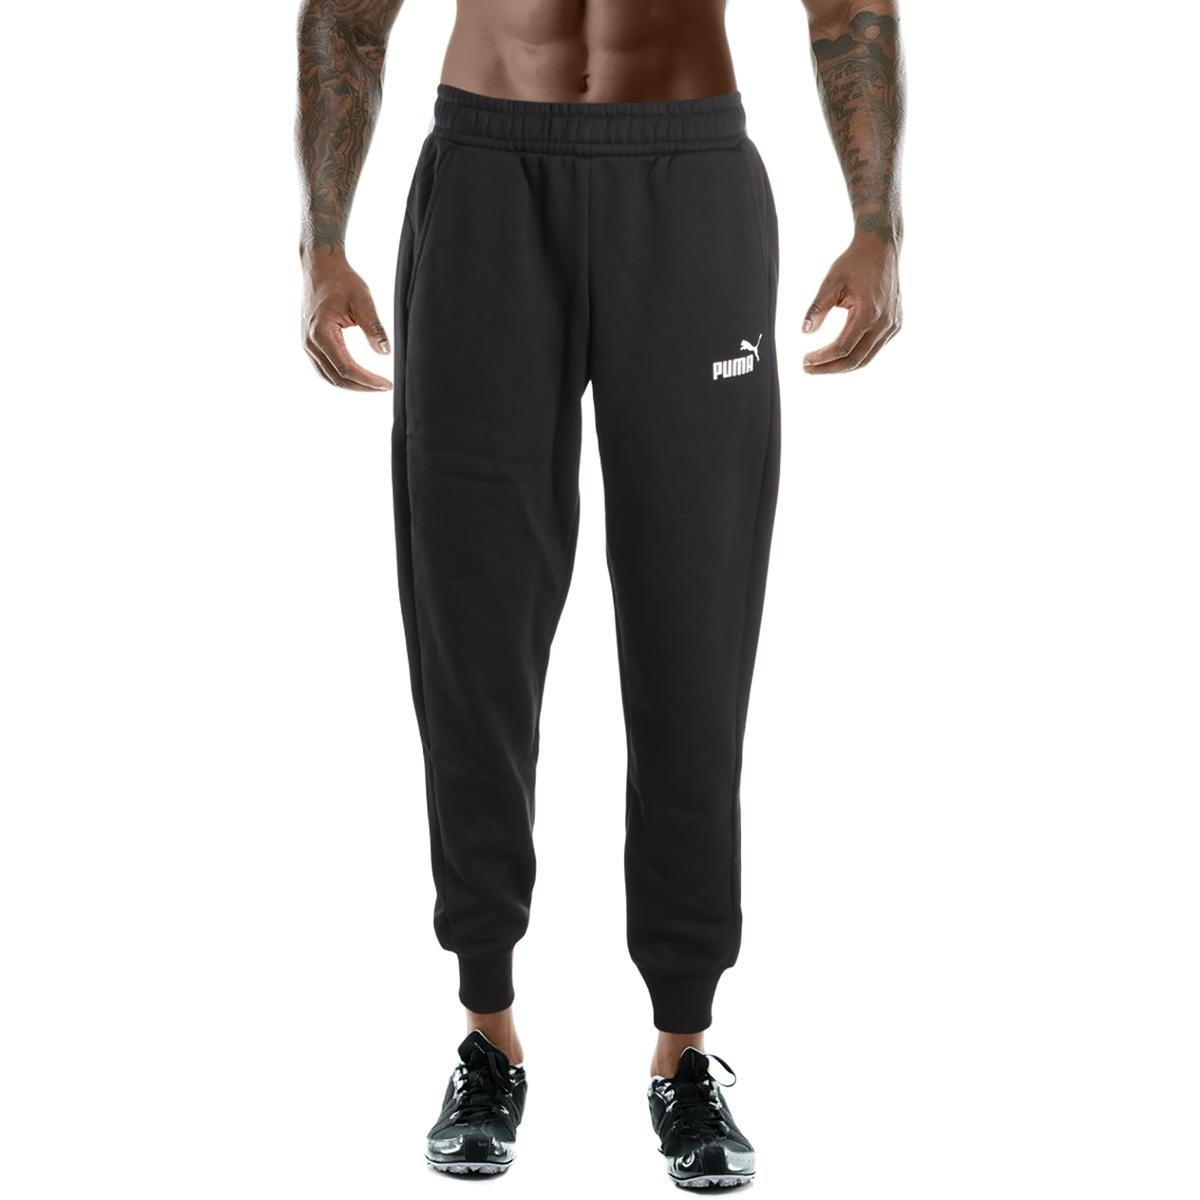 47f4887bdab7 Shop Puma Mens Essentials Fleece Pants Sweatpants Lounge Jogger - Free  Shipping On Orders Over  45 - Overstock - 24247379